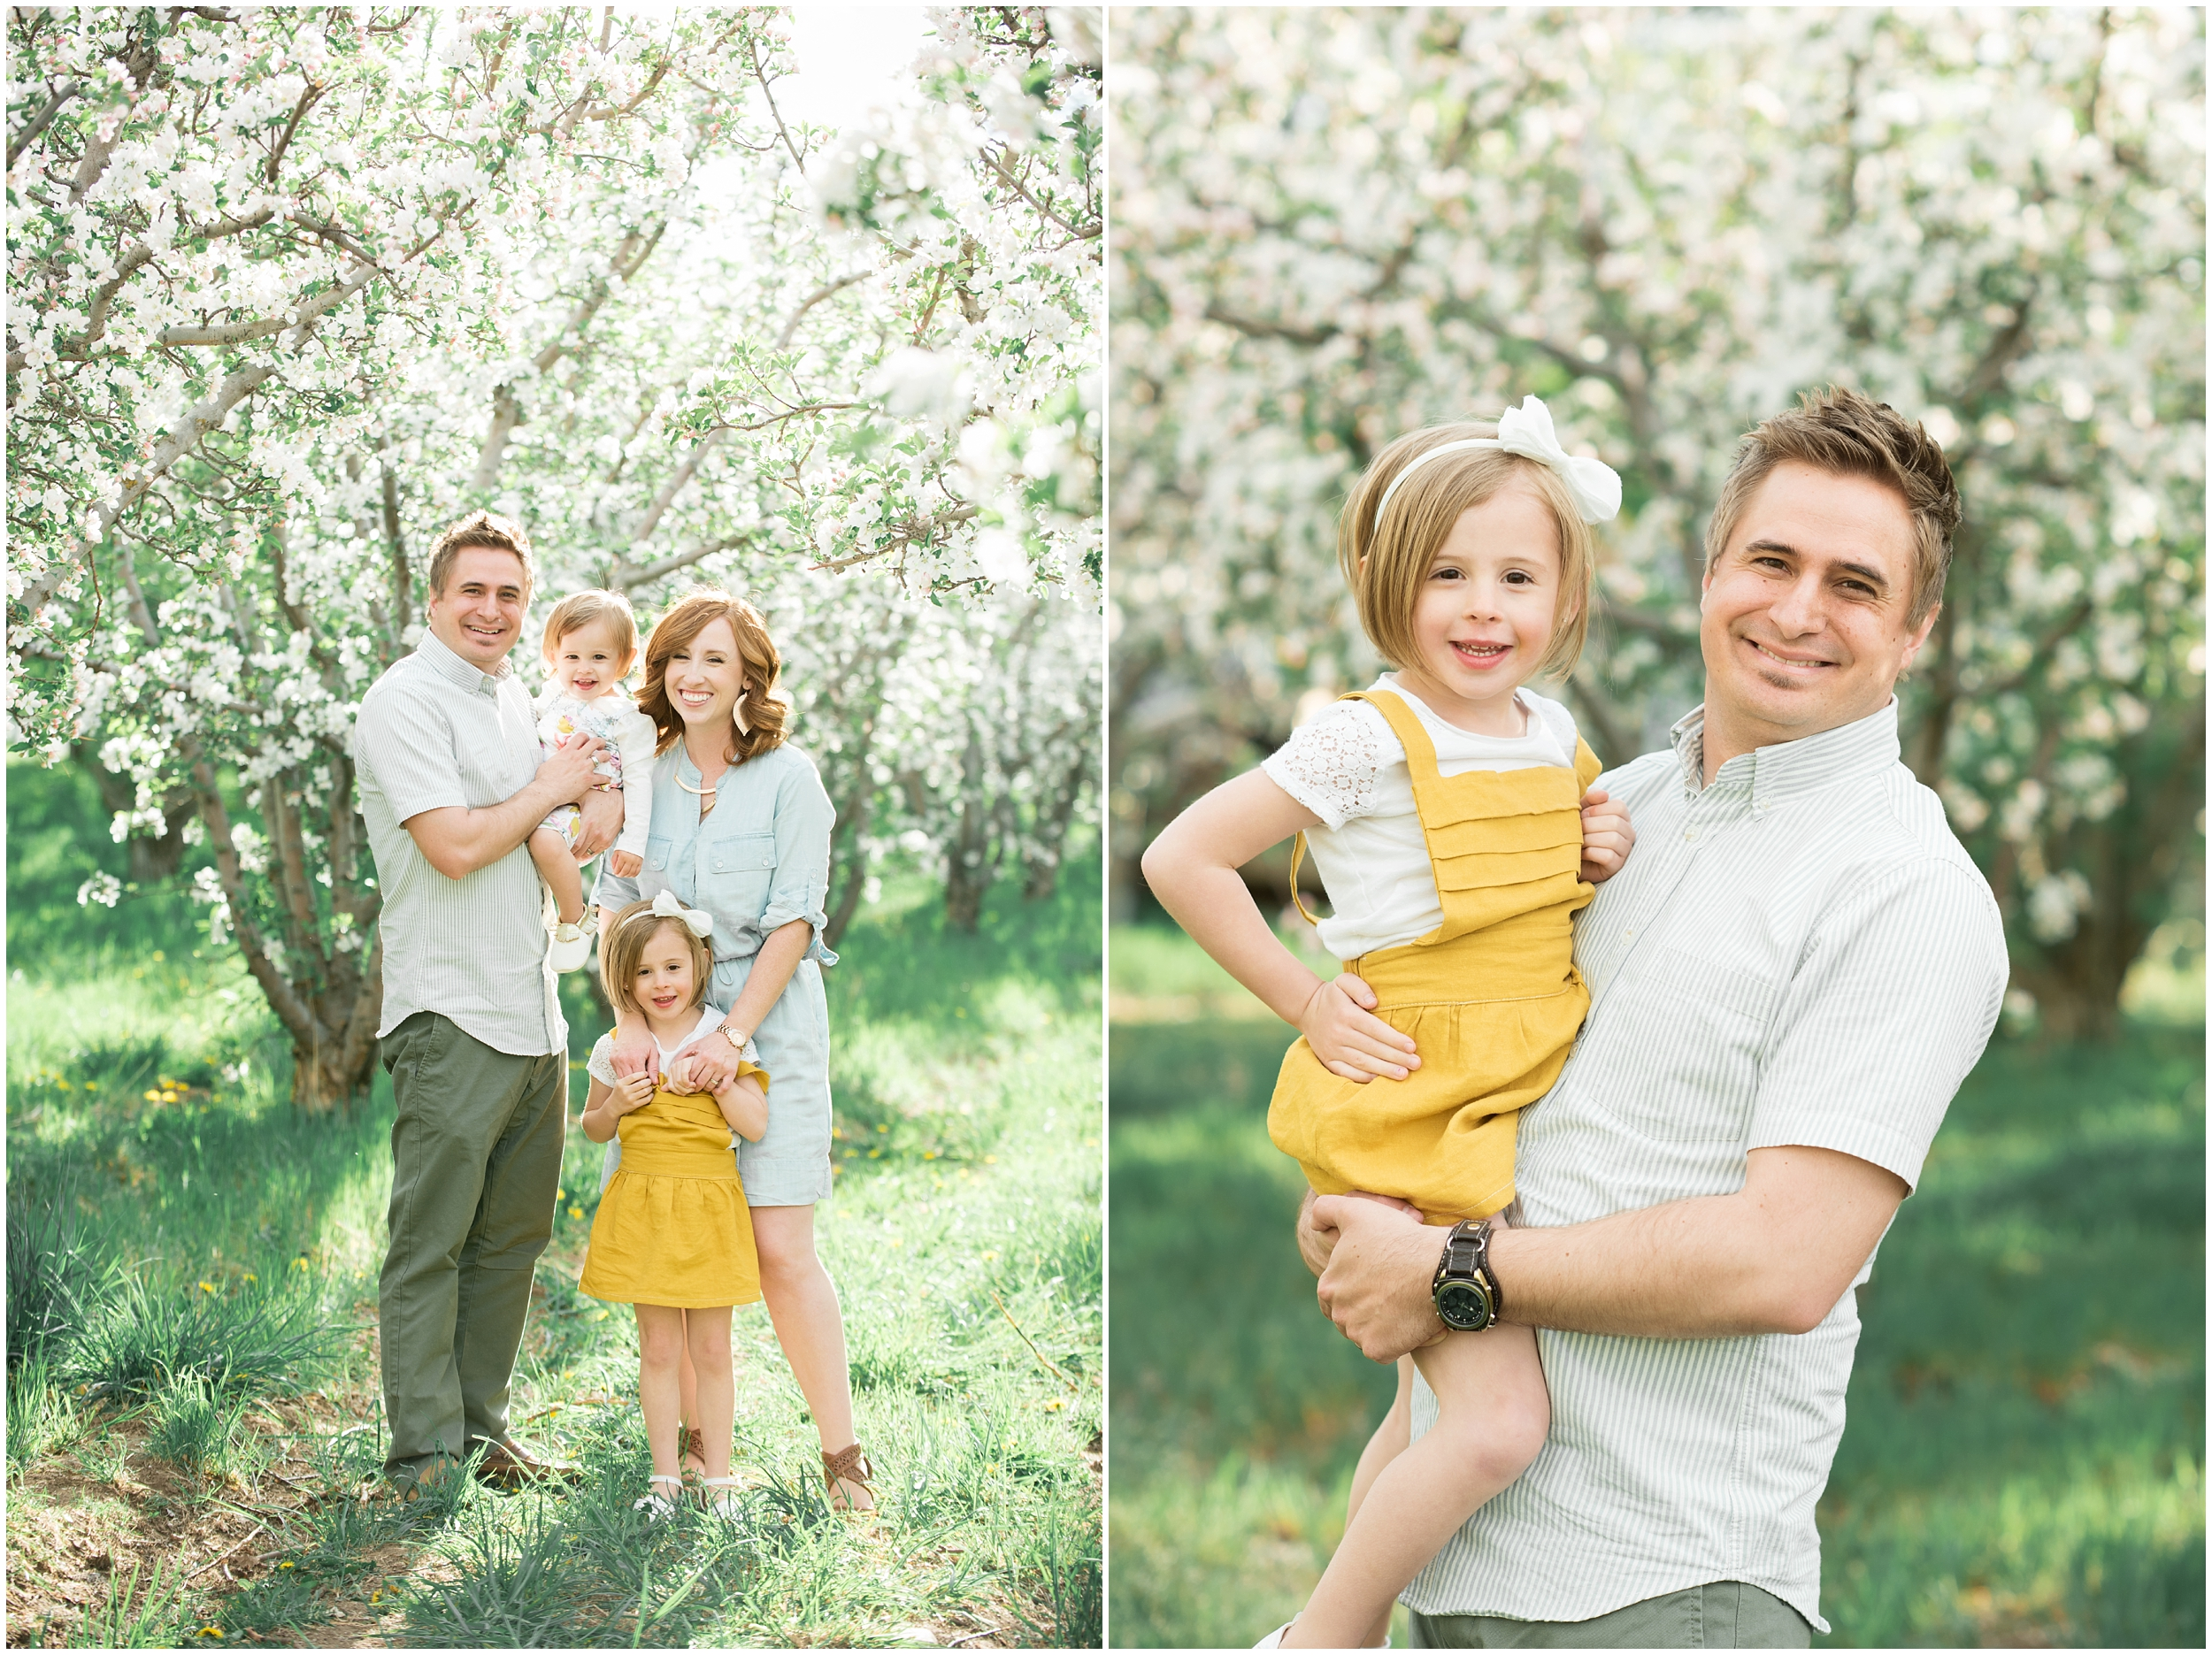 Family photographer, spring blossoms, play blue and yellow, orchard photos, Utah wedding photographers, Utah wedding photographer, Utah wedding photography, Utah county wedding photography, Utah county wedding photographer, salt lake city photographers, salt lake city wedding photography, salt lake photographers, salt lake city photographers, photographers in Utah, Utah photography, photography Utah, photographer Utah, Kristina Curtis photography, Kristina Curtis Photographer, www.kristinacurtisphotography.com